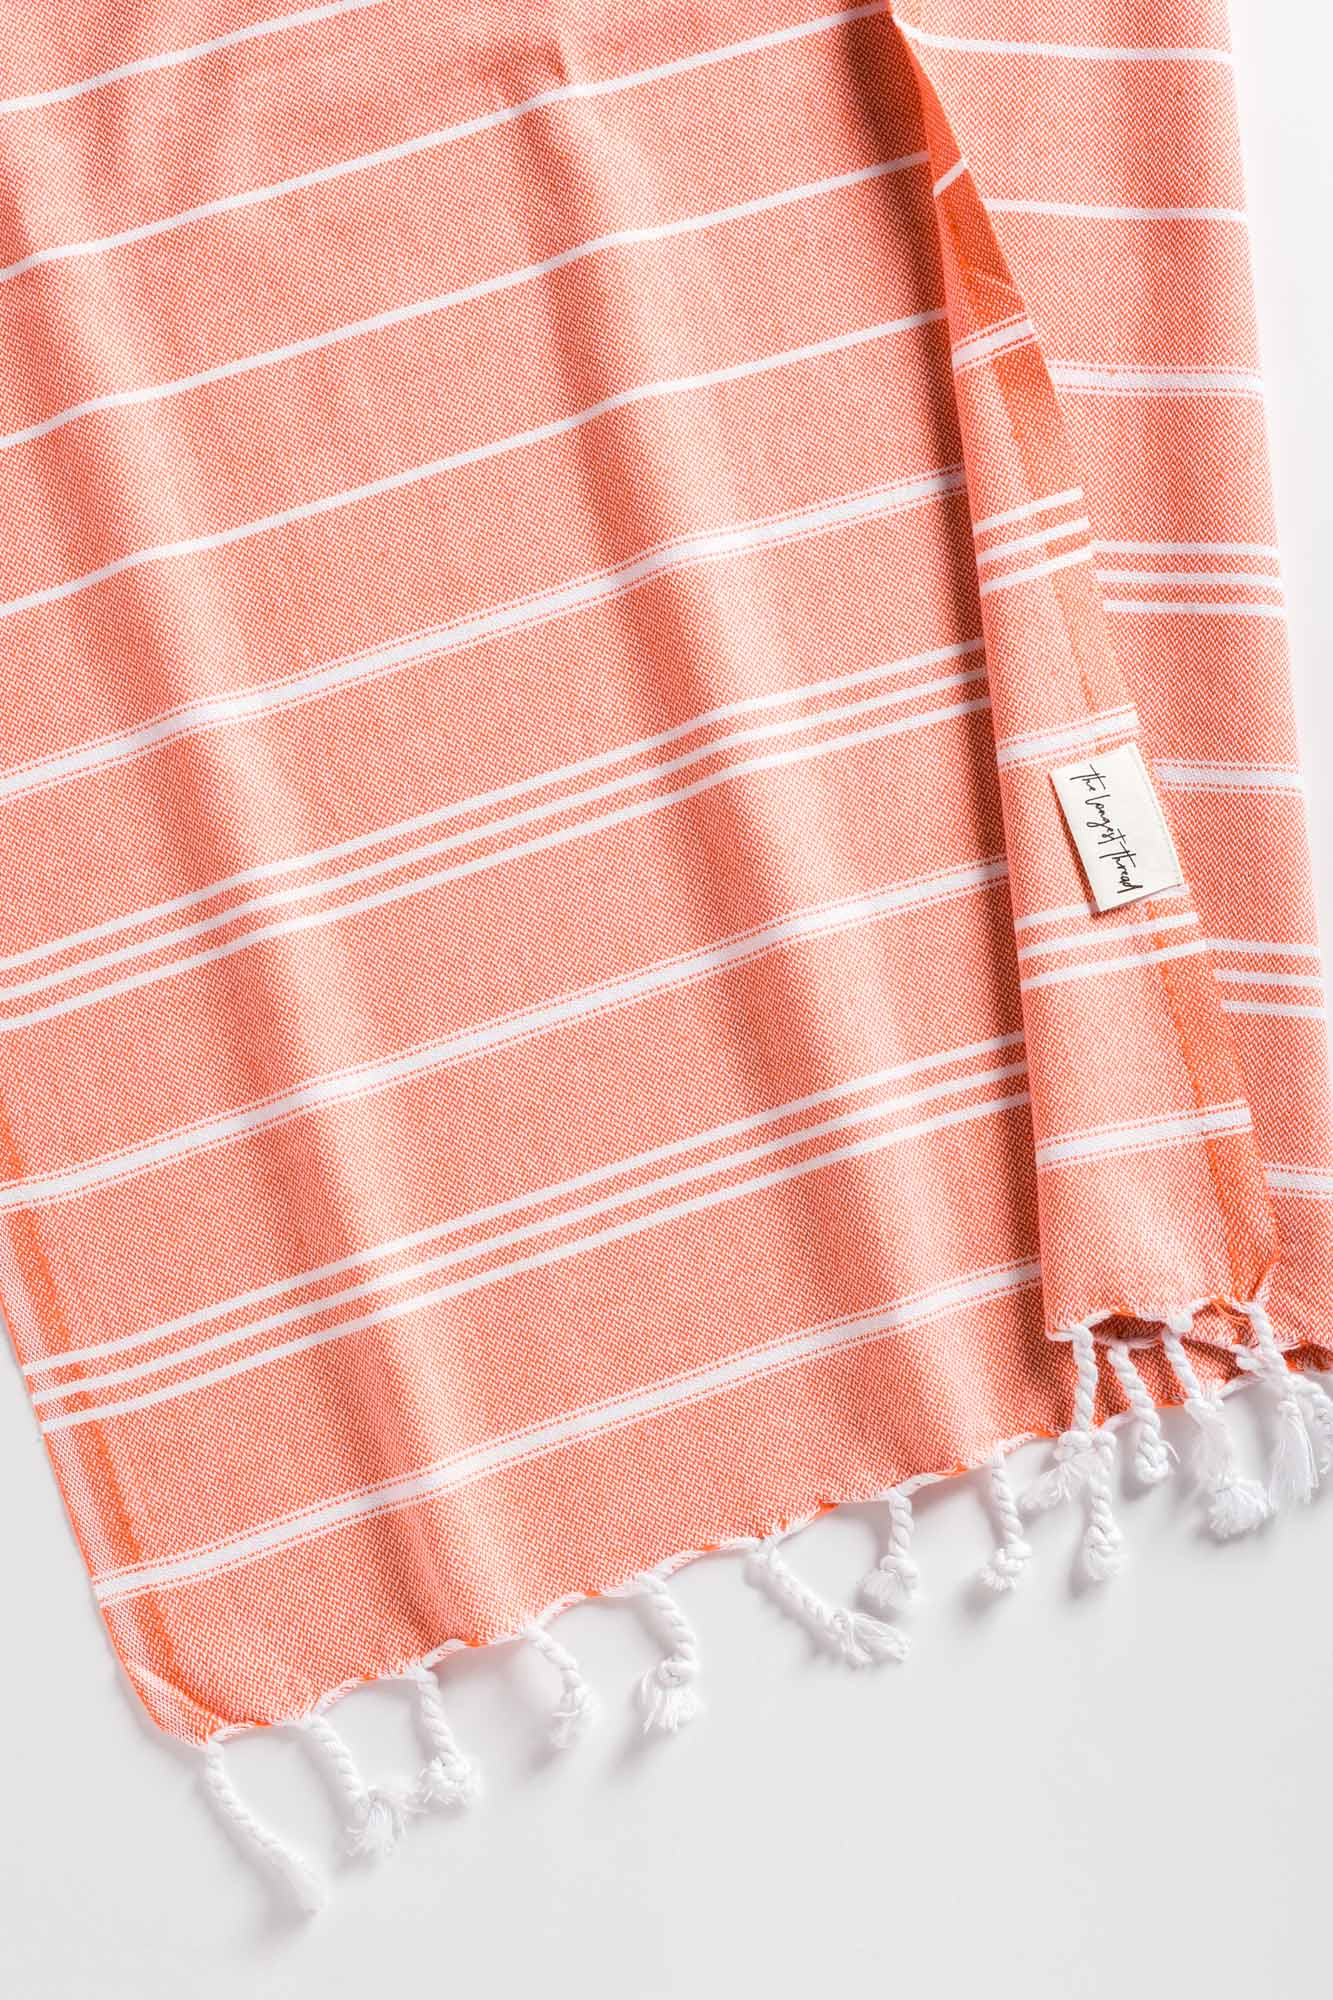 Basic Coral Turkish Hand Towel Image 1